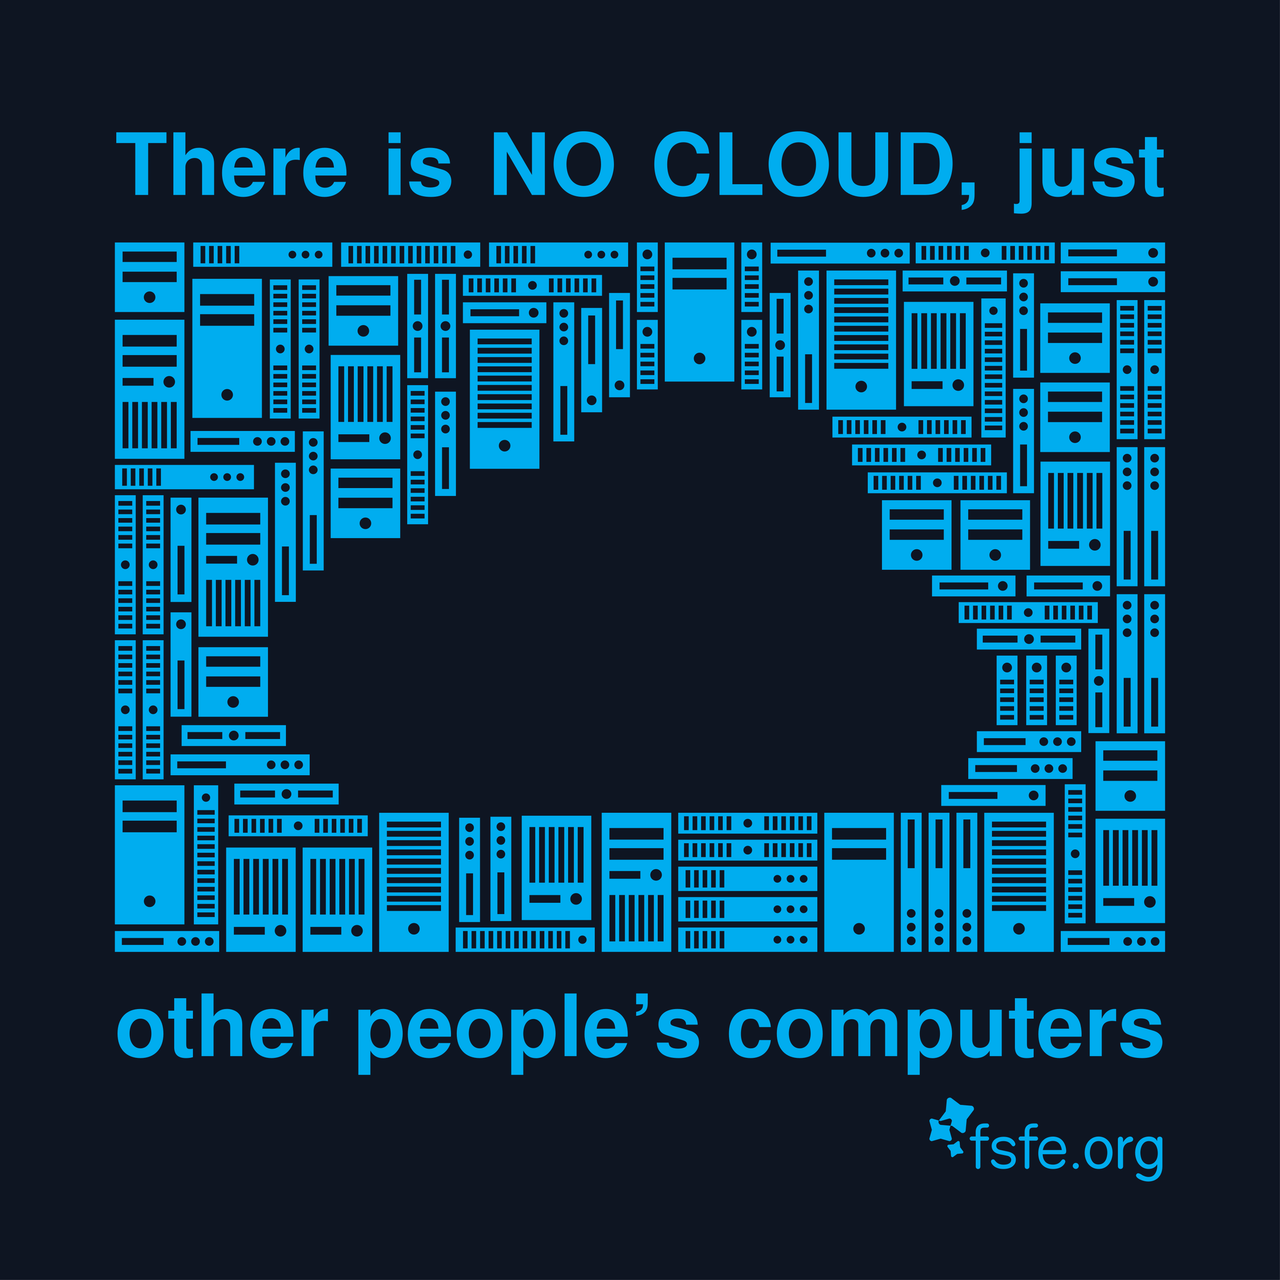 There is NO CLOUD, just other people's computers. -- fsfe.org